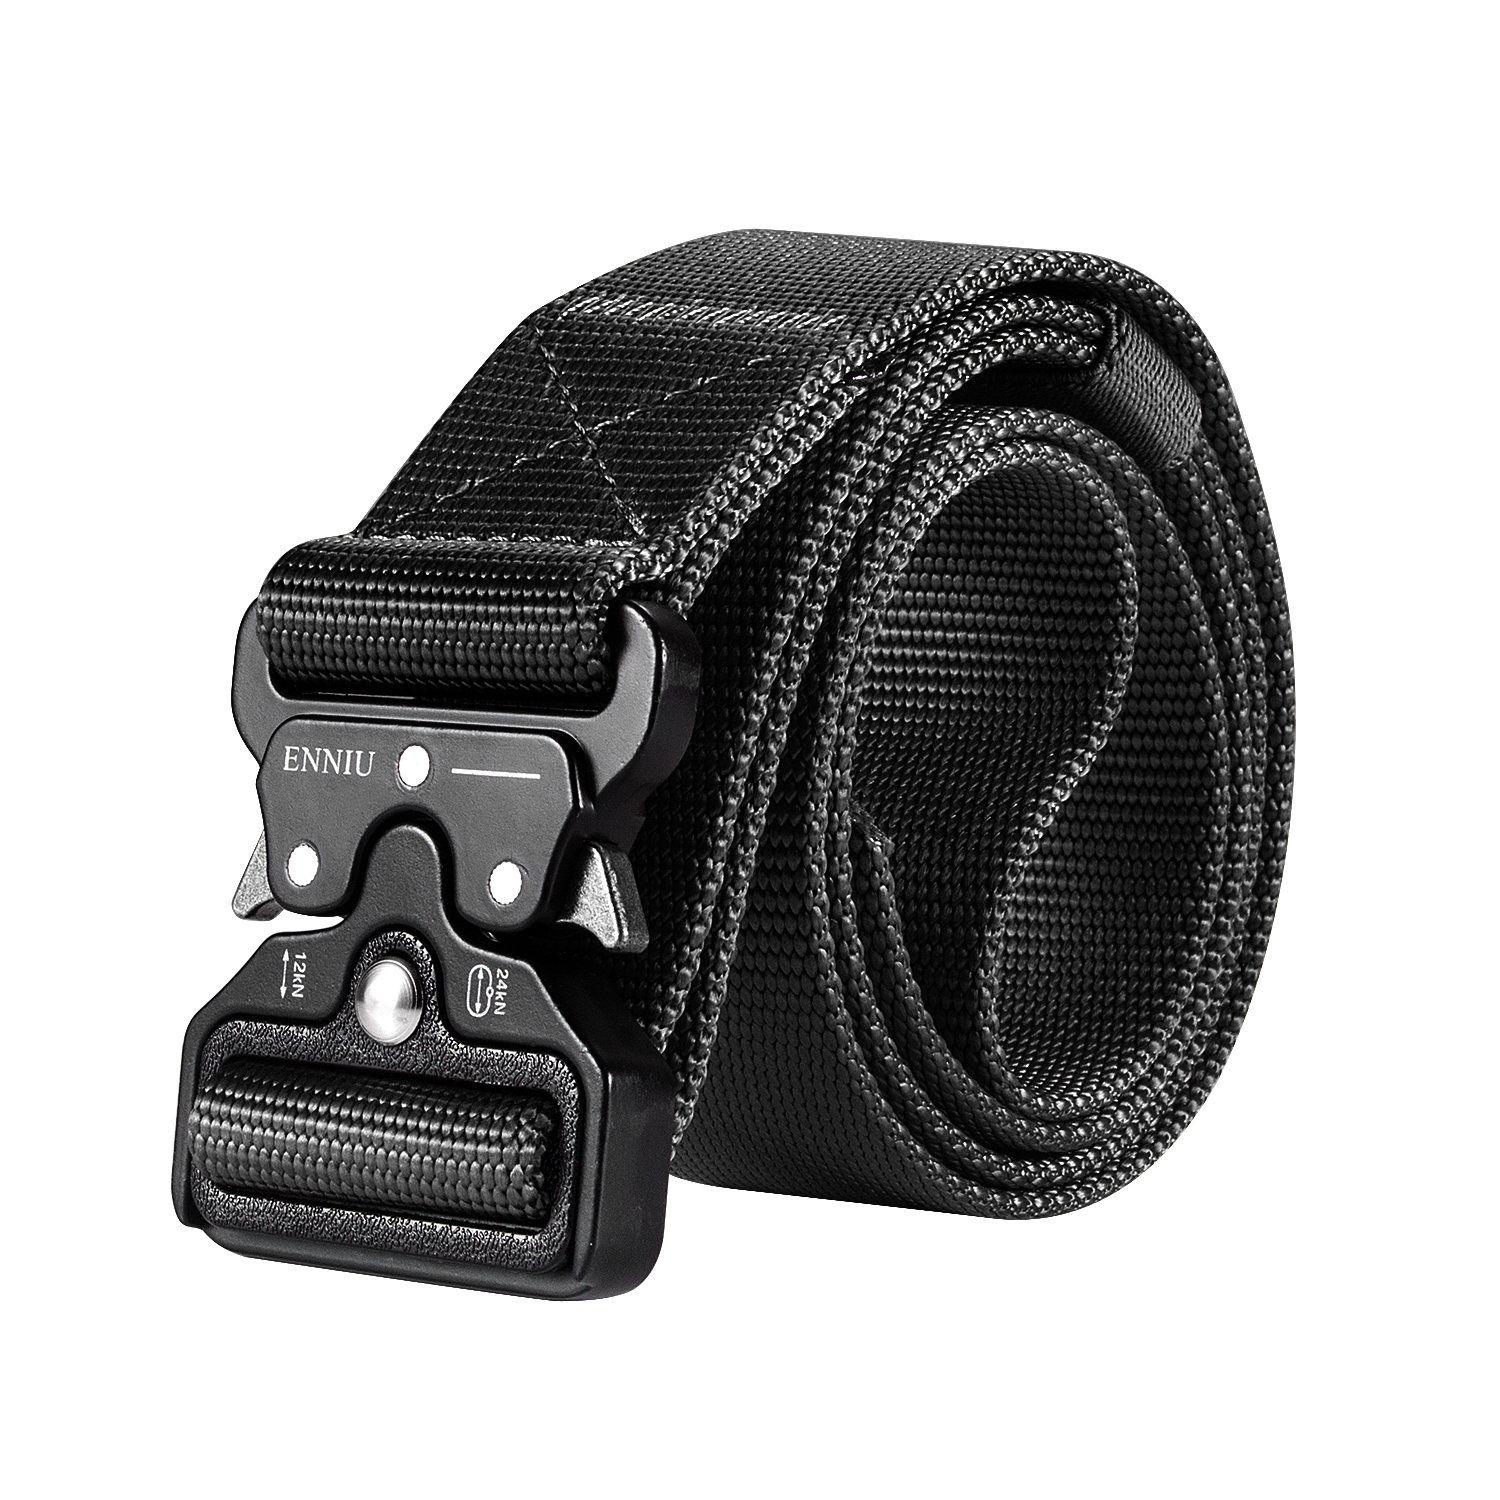 Military Style Adjustable Heavy-Duty 1.5/'/' Riggers Nylon Belt with Quick-Release Metal Buckle for Working Outdoor Molle APERIL Men Tactical Belt